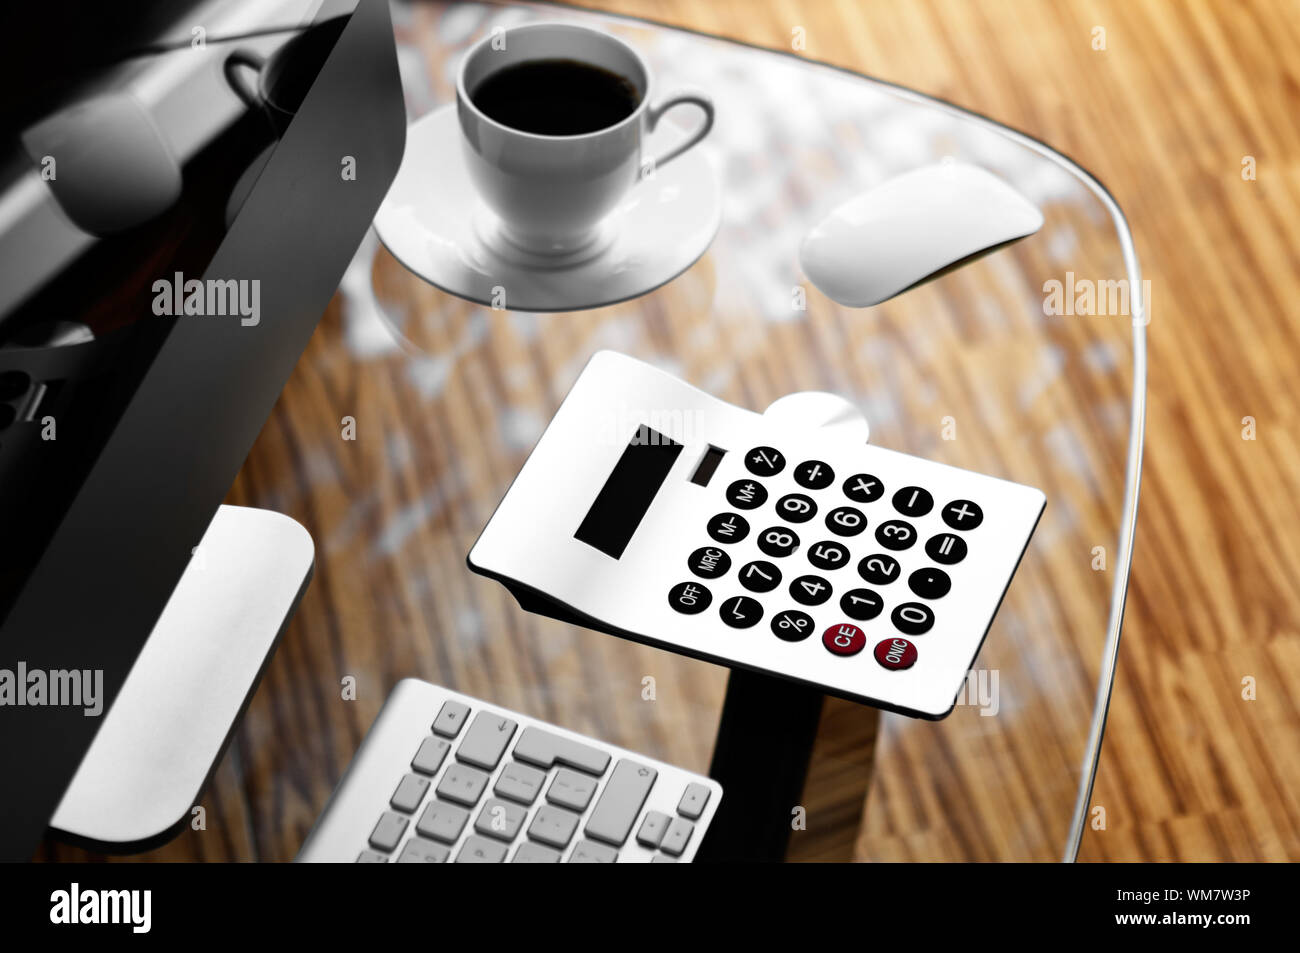 Computer Calculator And Cup Of Coffee On Glass Desk Stock Photo Alamy